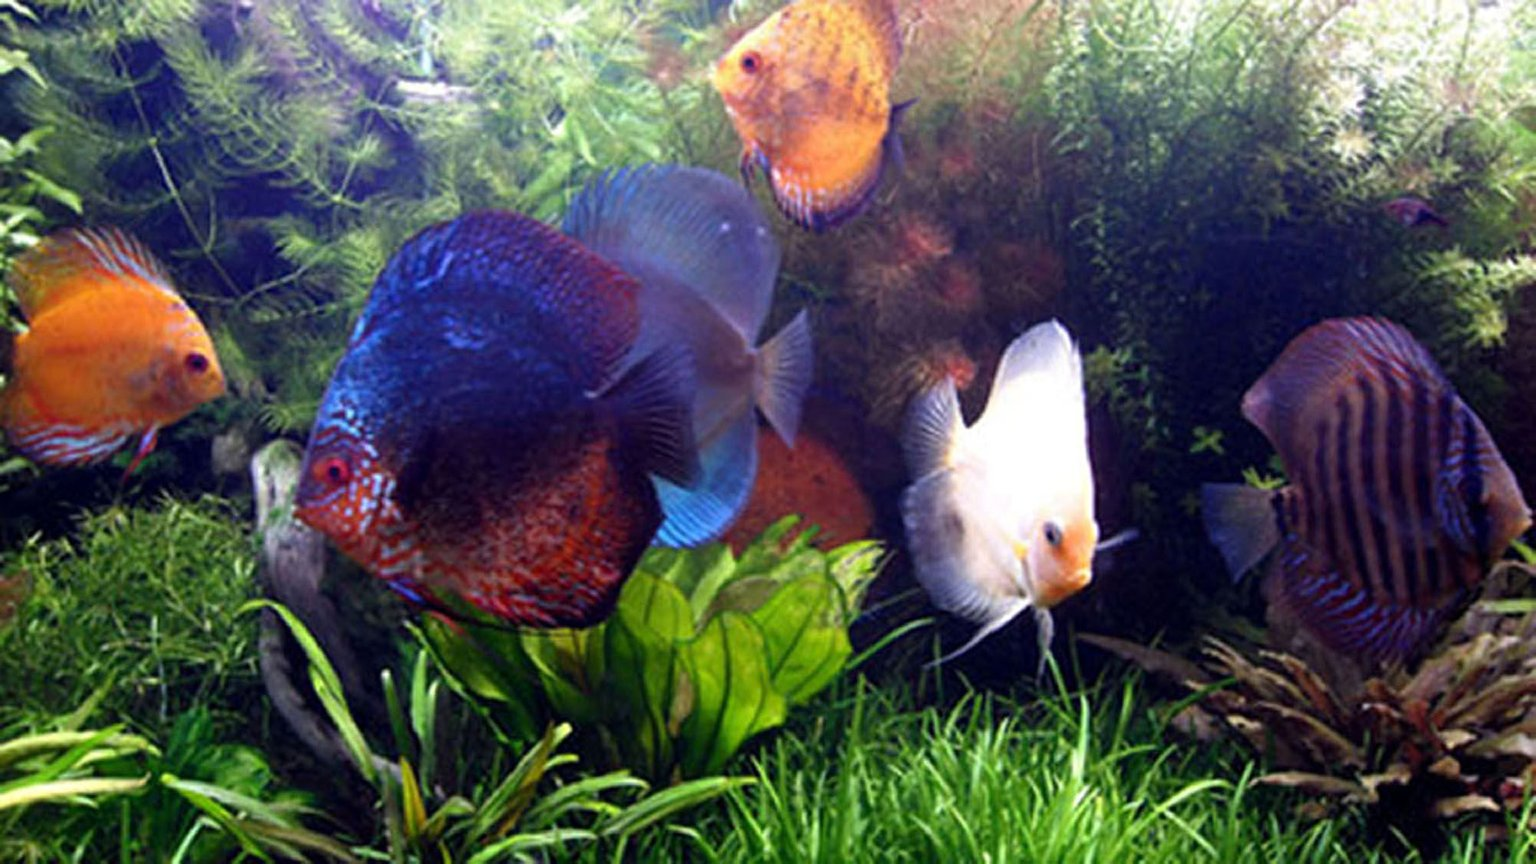 freshwater fish - symphysodon aequifasciata - green discus stocking in 75 gallons tank - Some of my oldest kids!